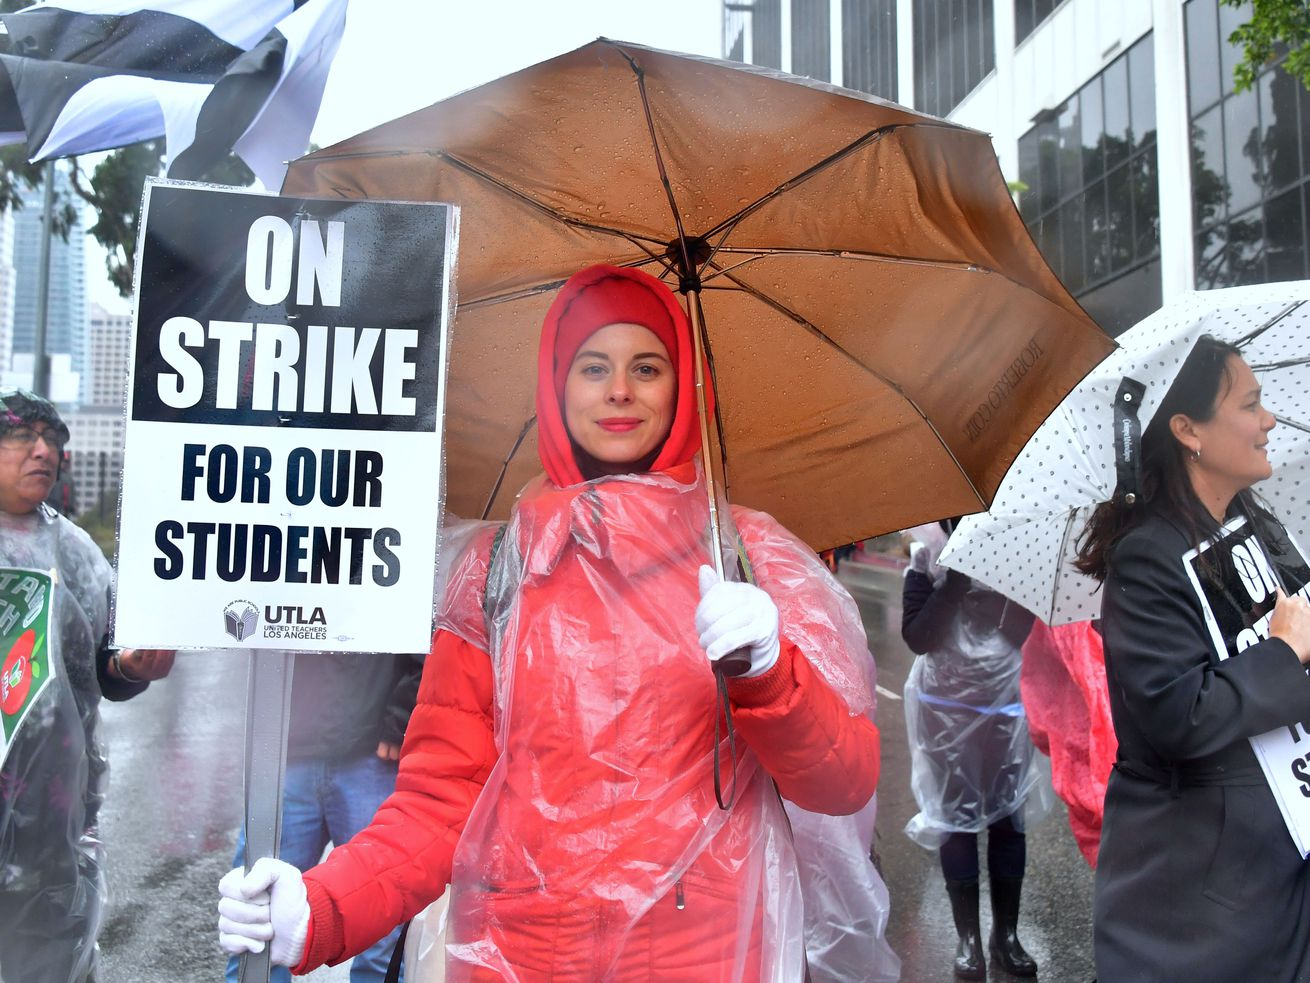 An elementary school teacher joins thousands of other teachers on strike in Los Angeles on January 14, 2019. California is one of the few states that gives government workers the right to unionize and strike.